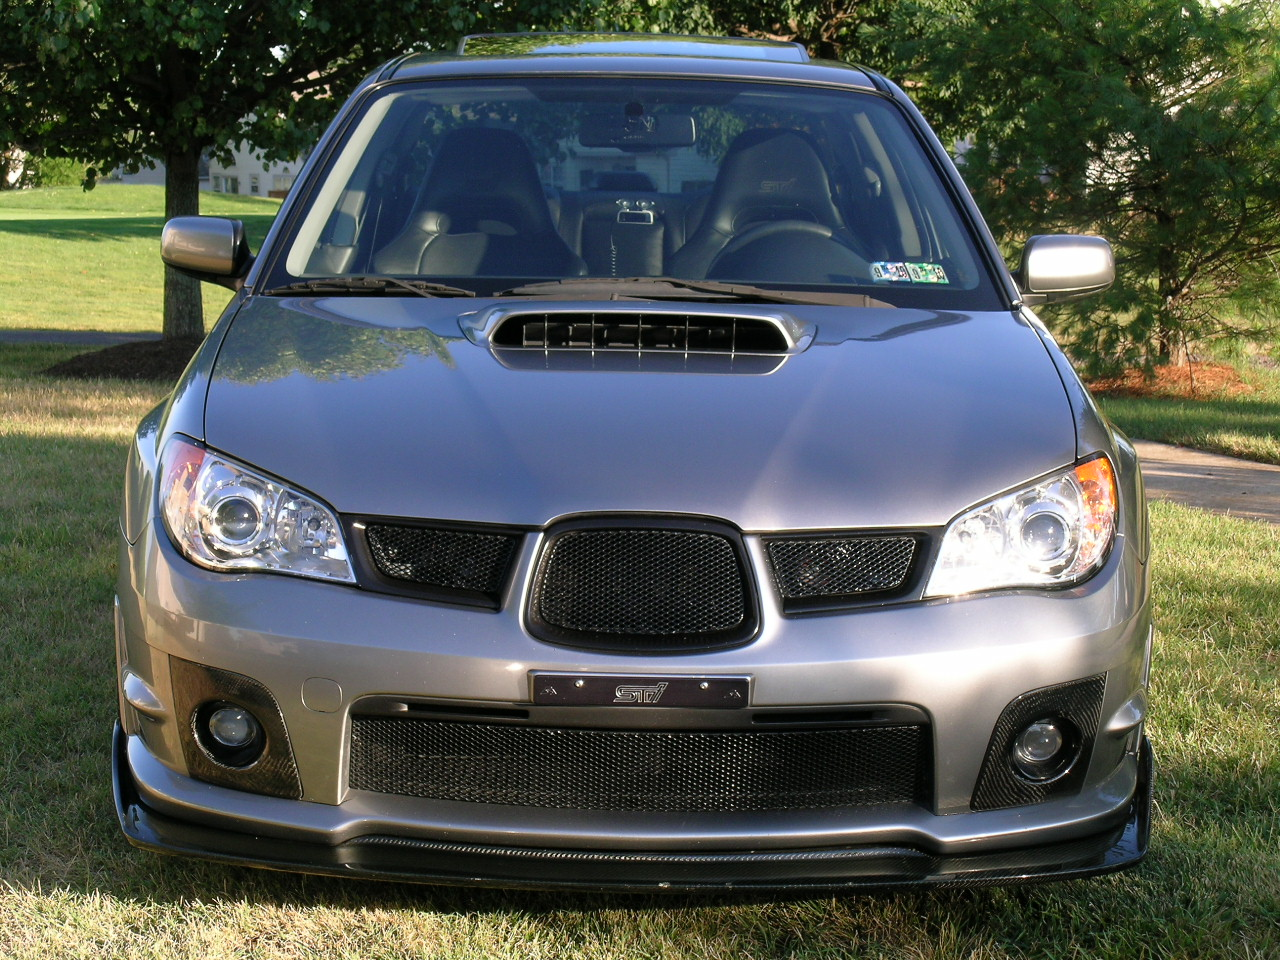 2007 subaru impreza s gt automatic related infomation. Black Bedroom Furniture Sets. Home Design Ideas